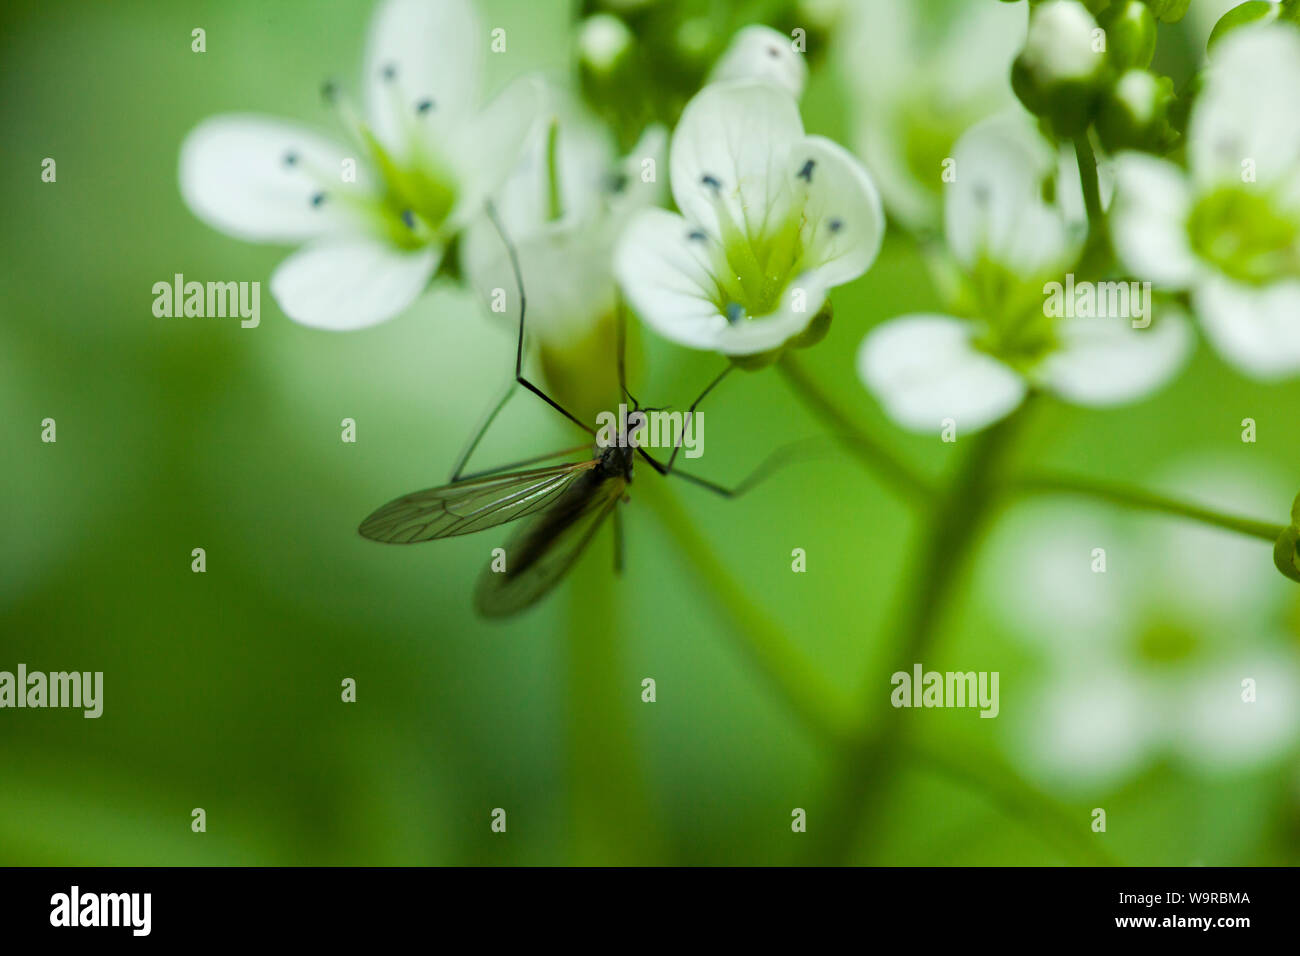 macro shot of an insect with long wings on a lush flower in the forest Stock Photo